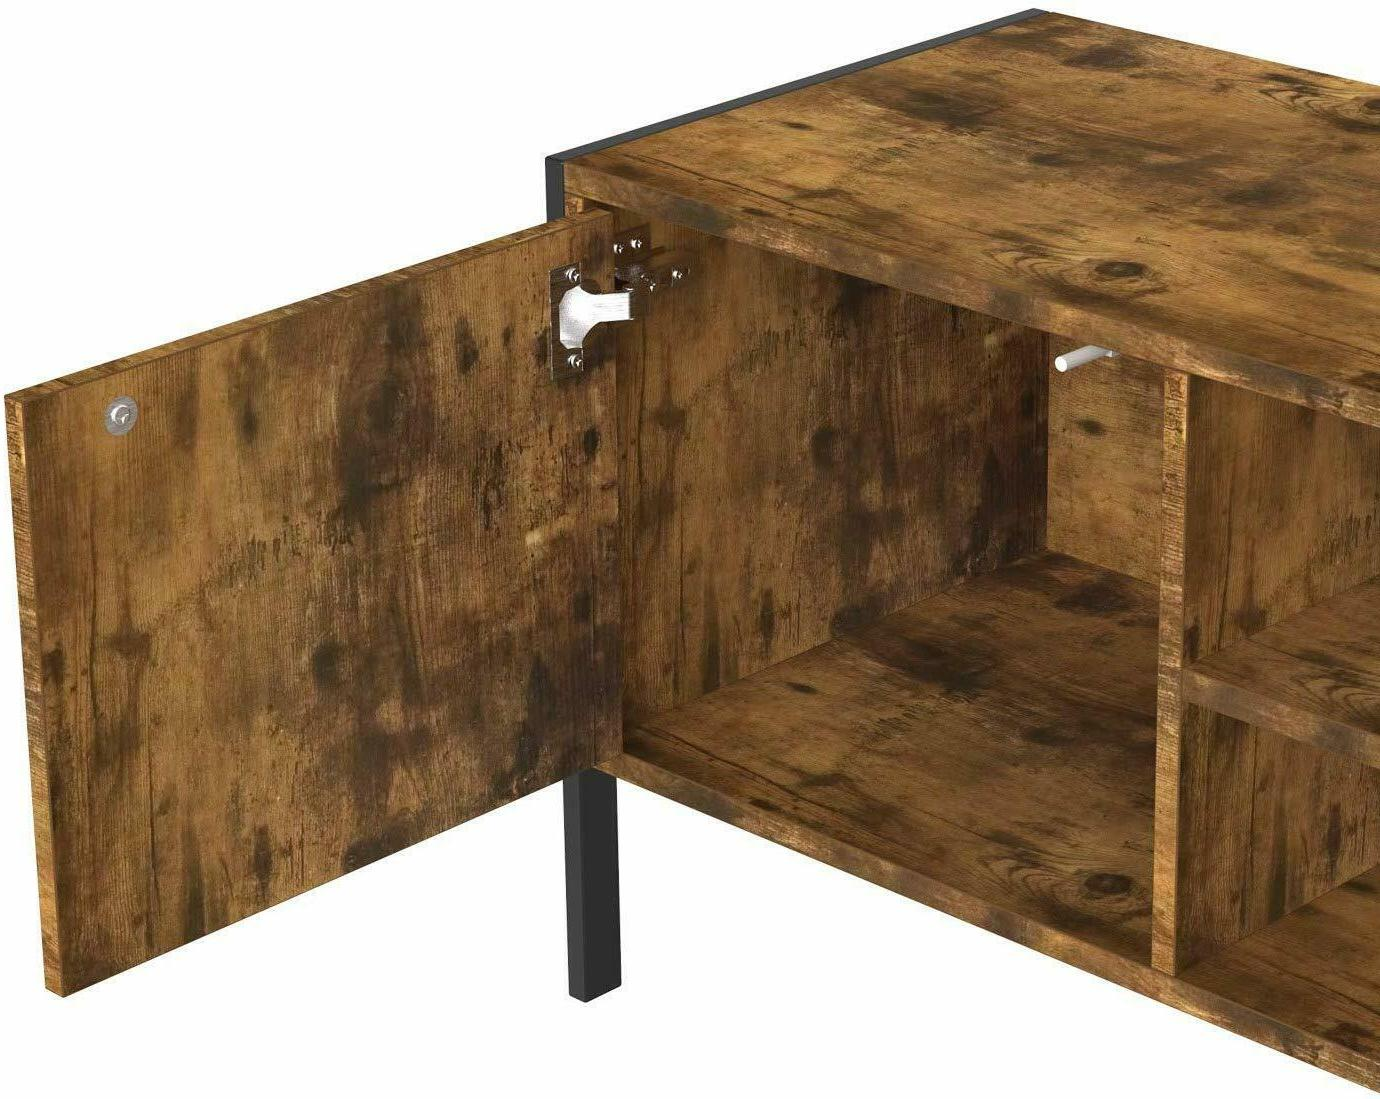 IRONCK Stand, TV Console, Television Media